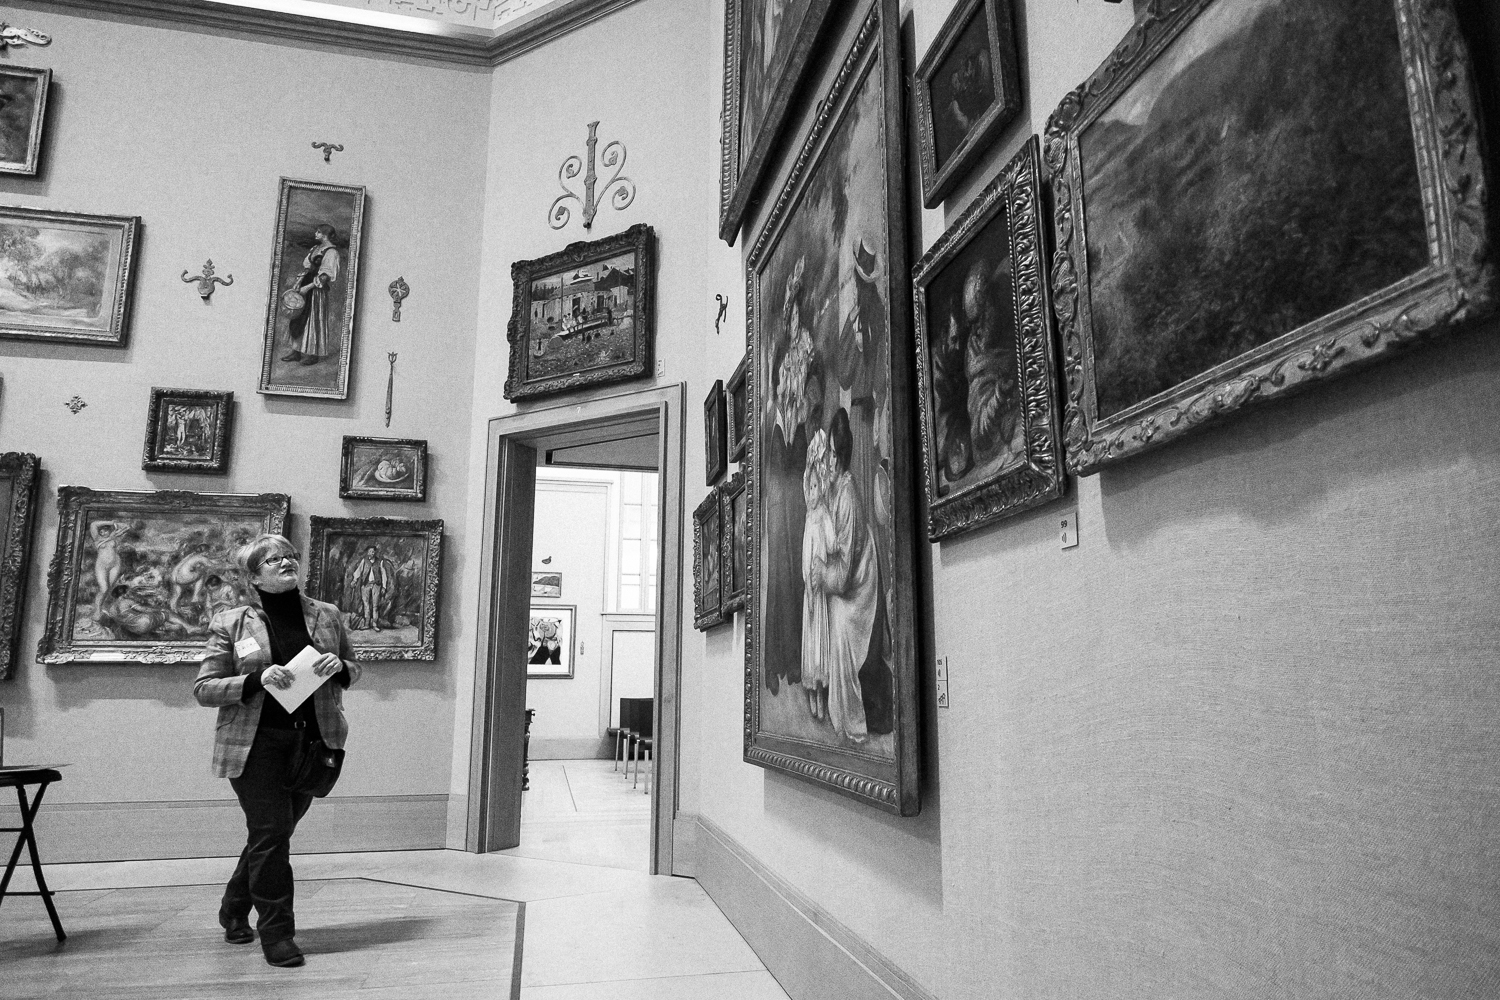 Dr. Susan Shifrin contemplates a work at The Barnes Foundation during an ARTZ event.